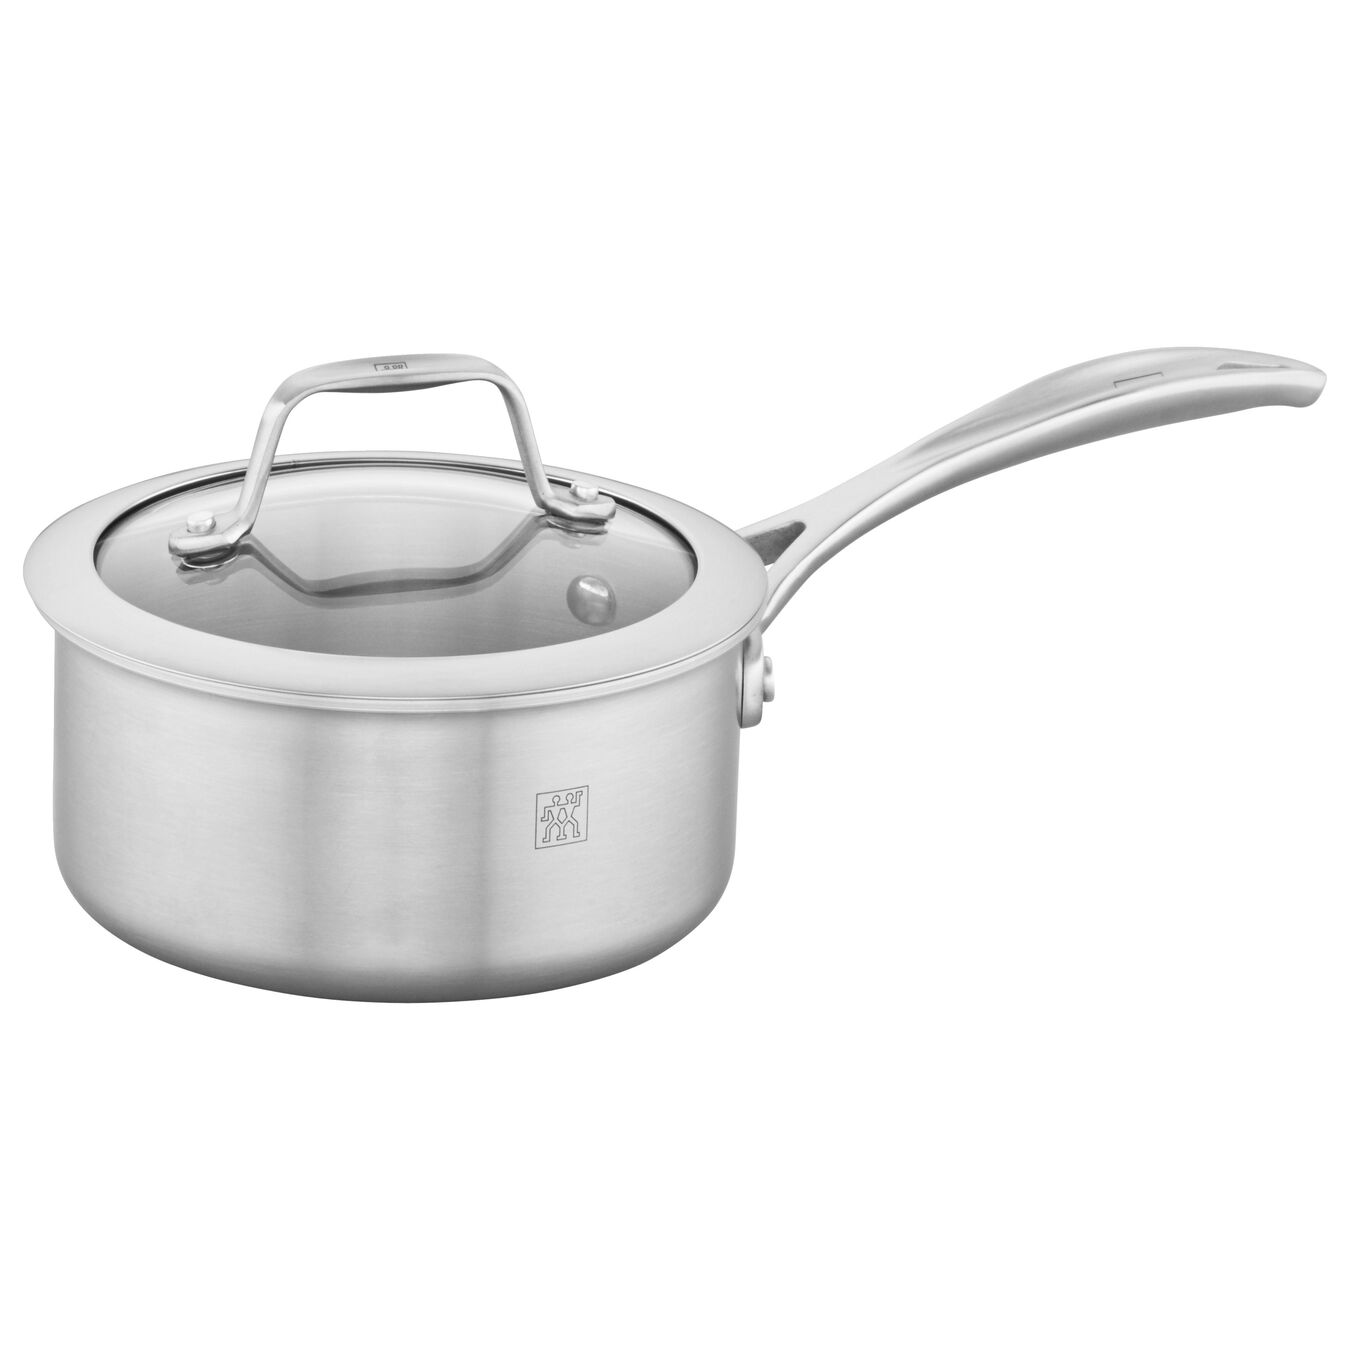 Ceramic, 10-pc, stainless steel, Cookware Set,,large 4